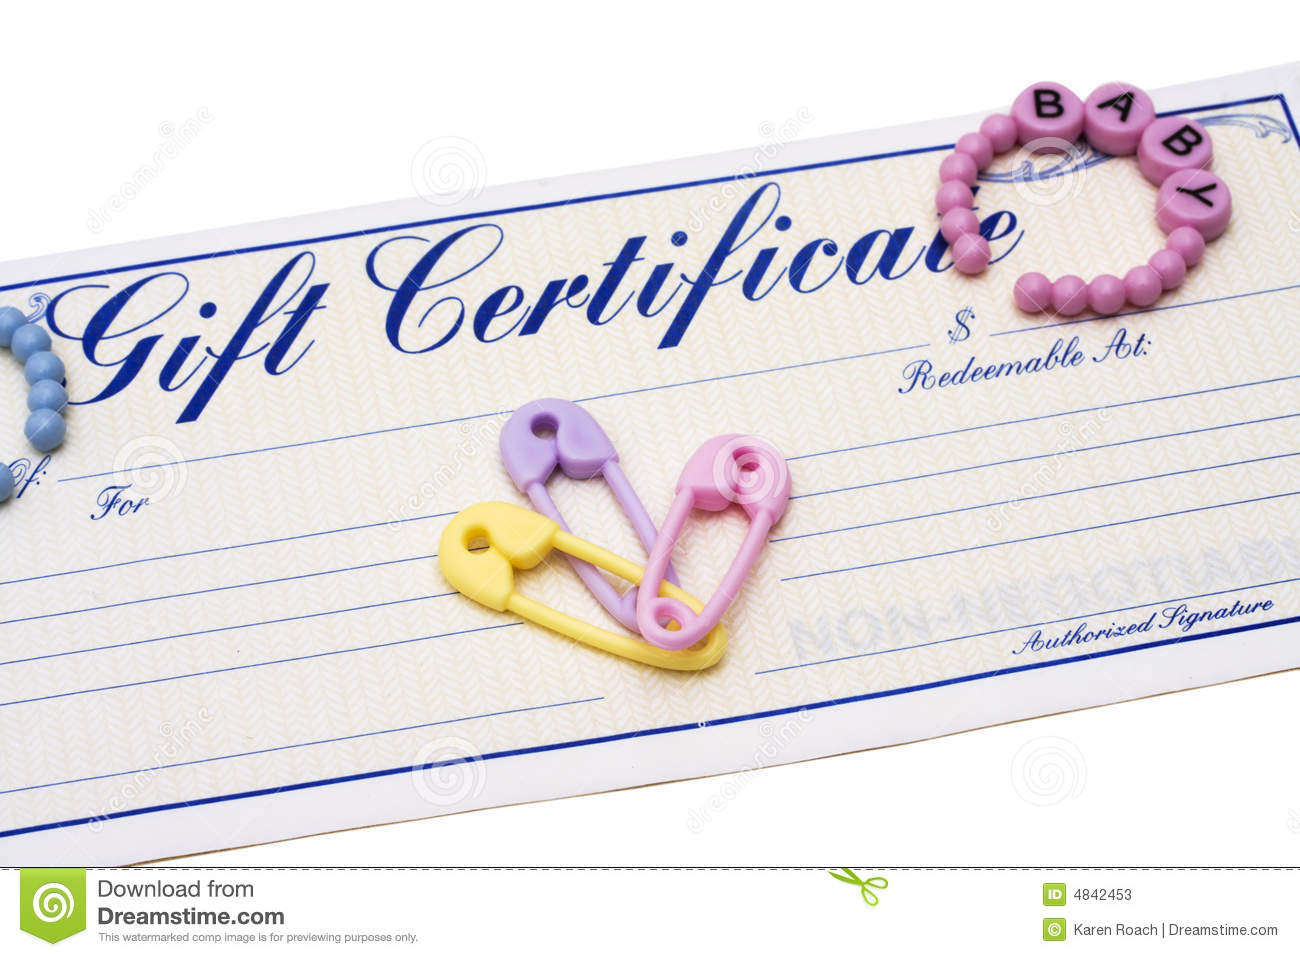 Baby shower gift certificate template baby shower gift tag baby shower gift certificate template baby gift certificate stock photos image yelopaper Choice Image